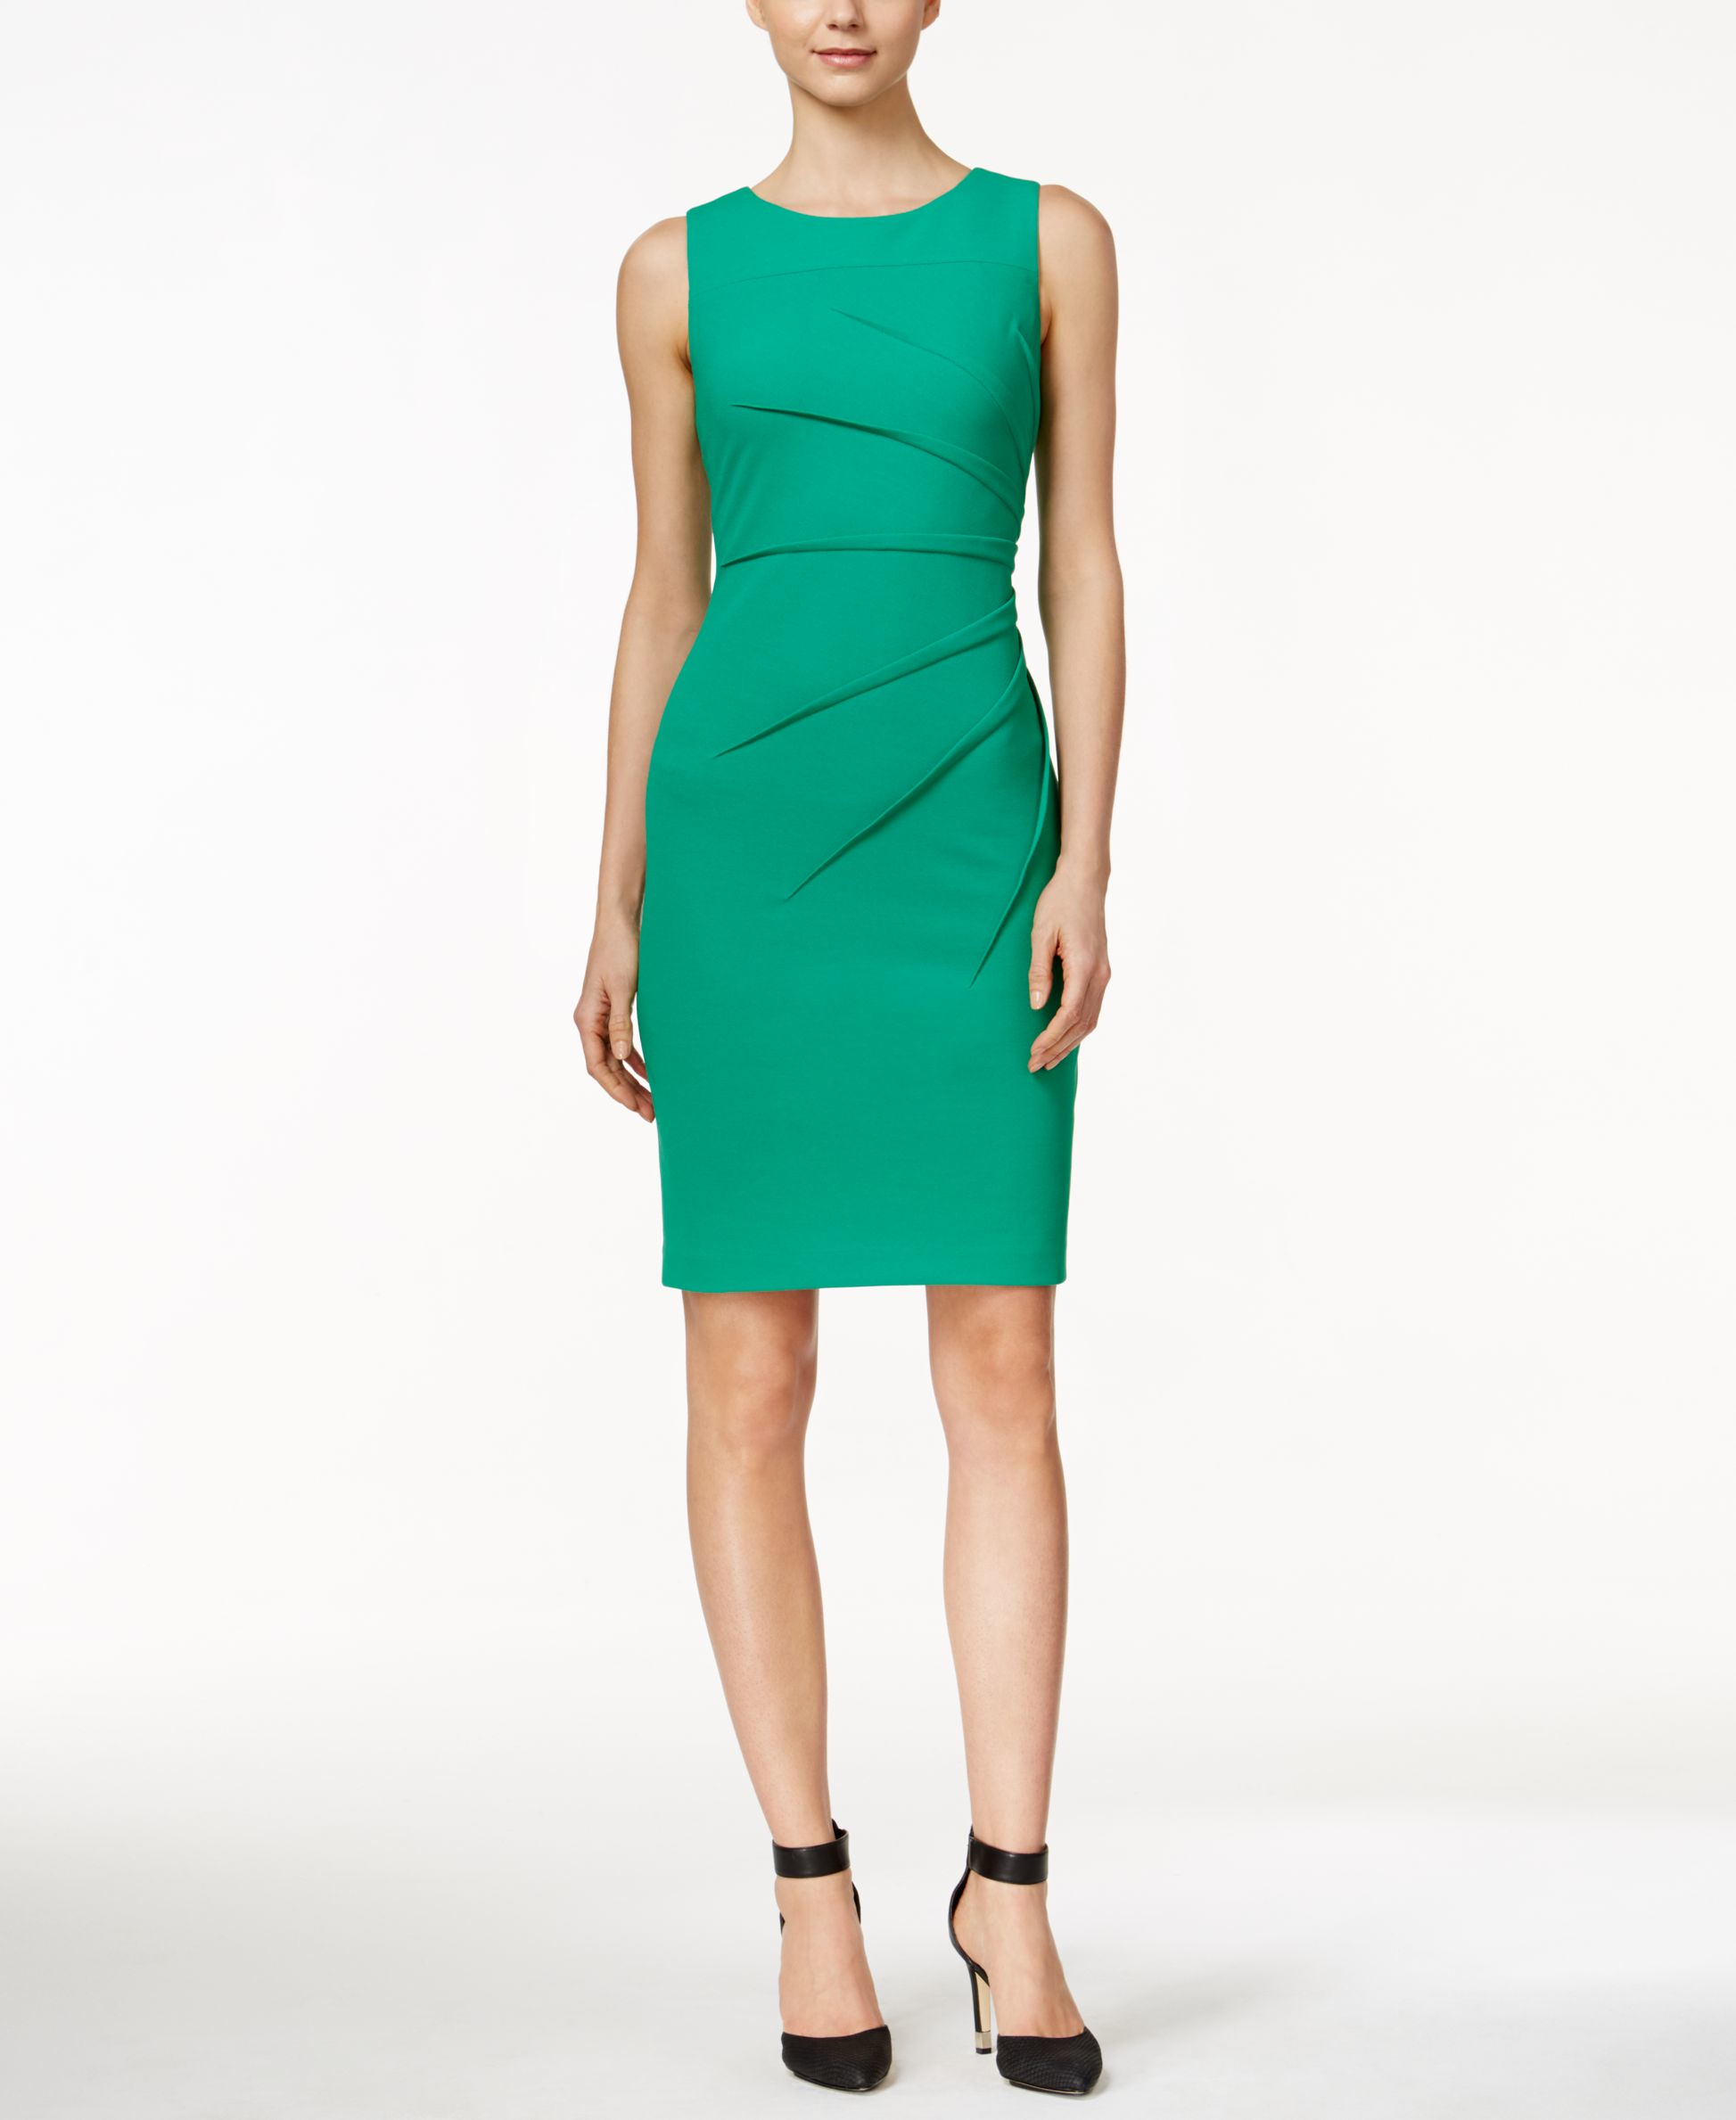 macys green dresses photo - 1